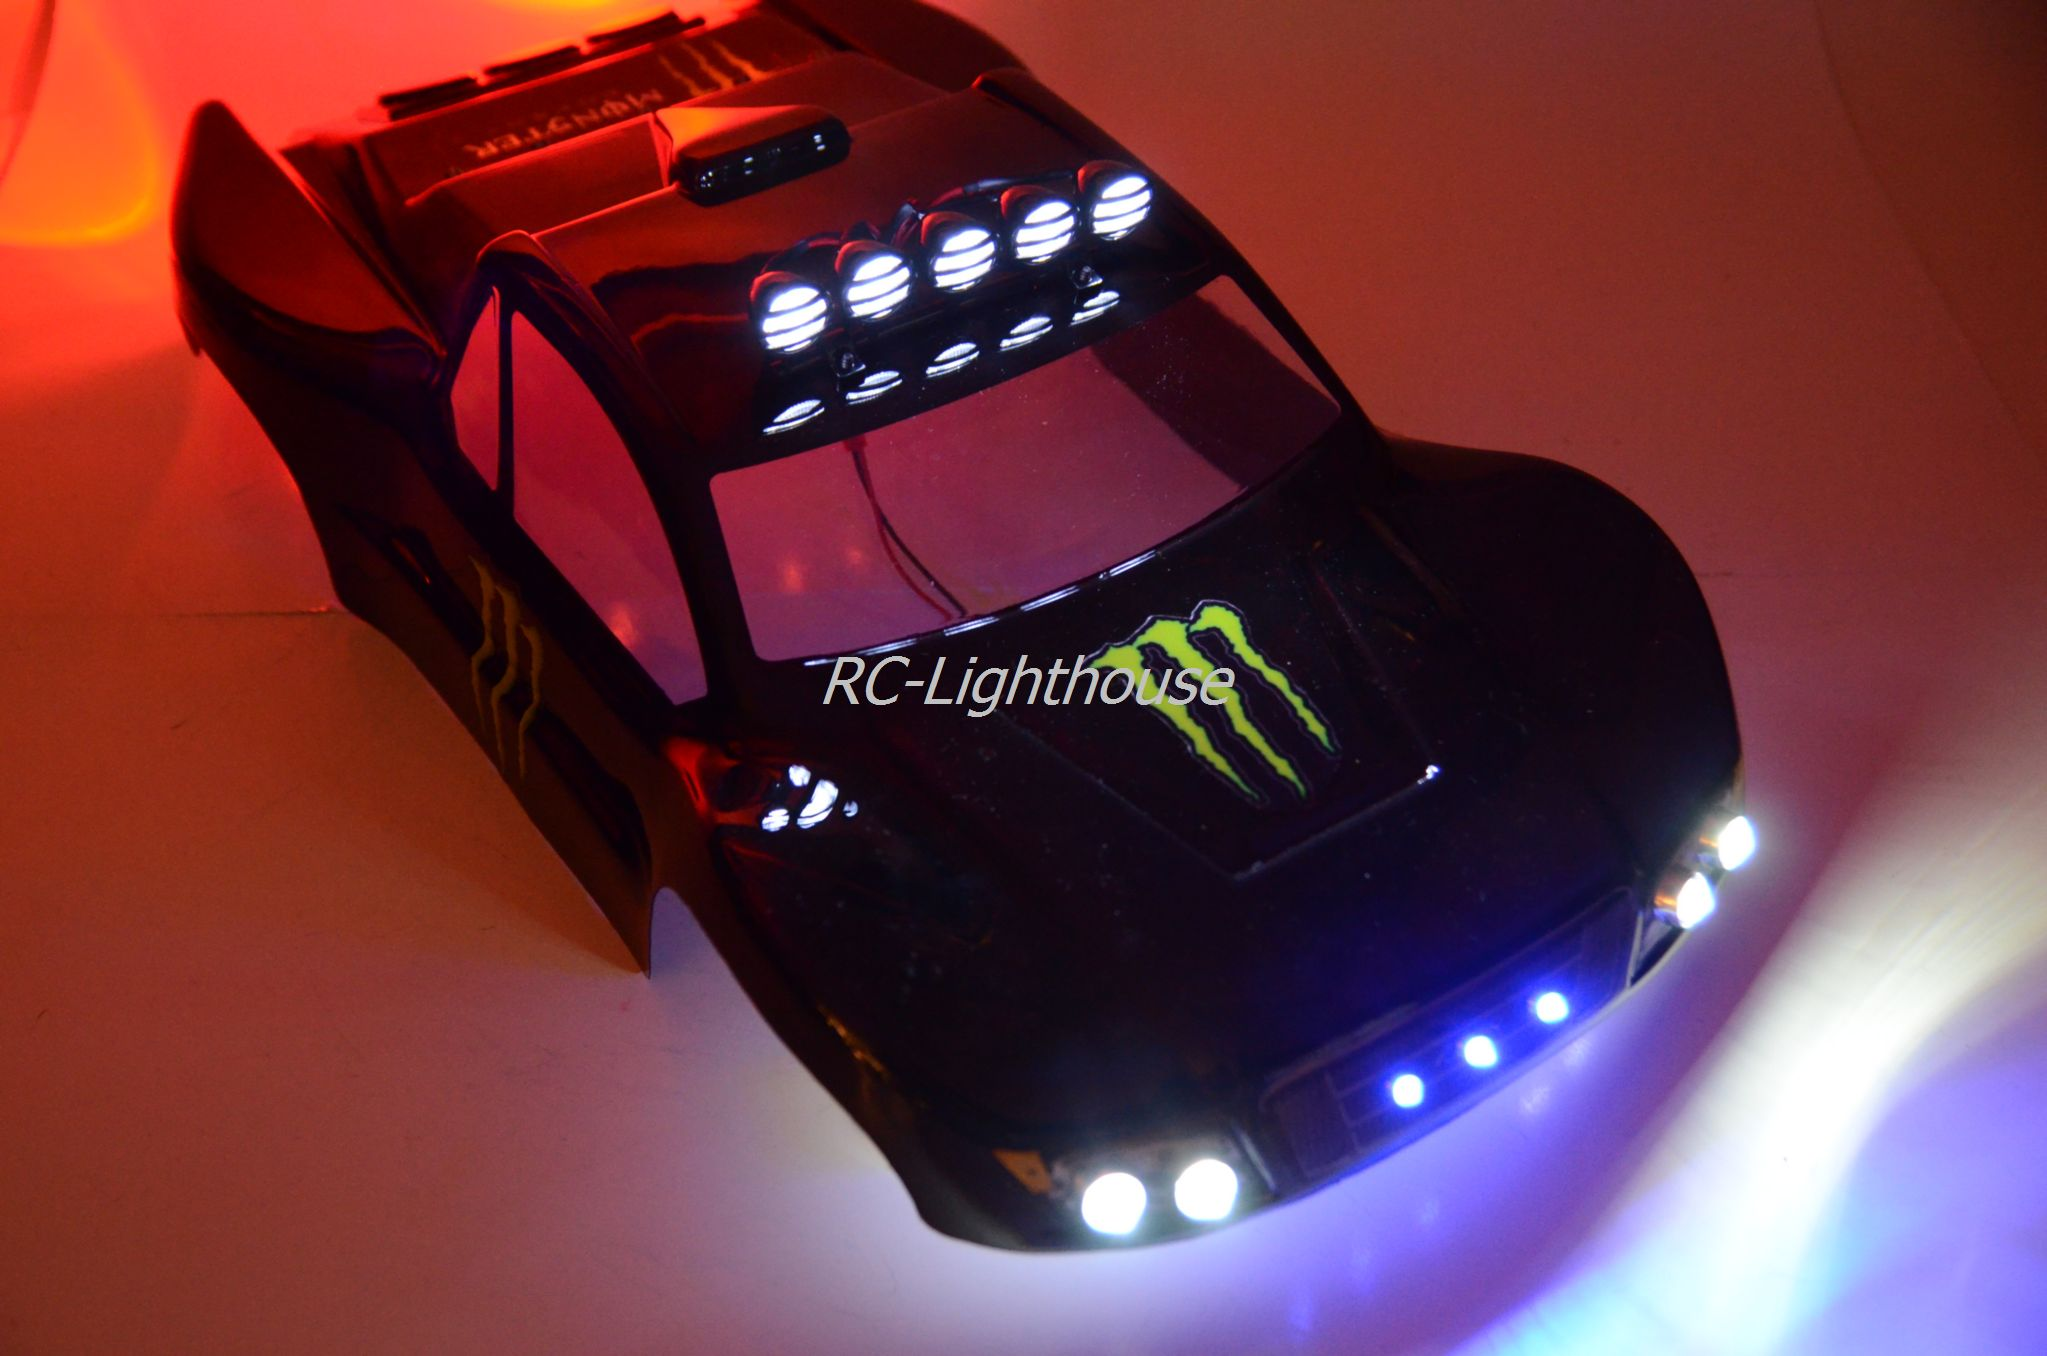 40 deluxe rc led light set with light bar rc lighthouse deluxe rc led light set with light bar 40 aloadofball Images